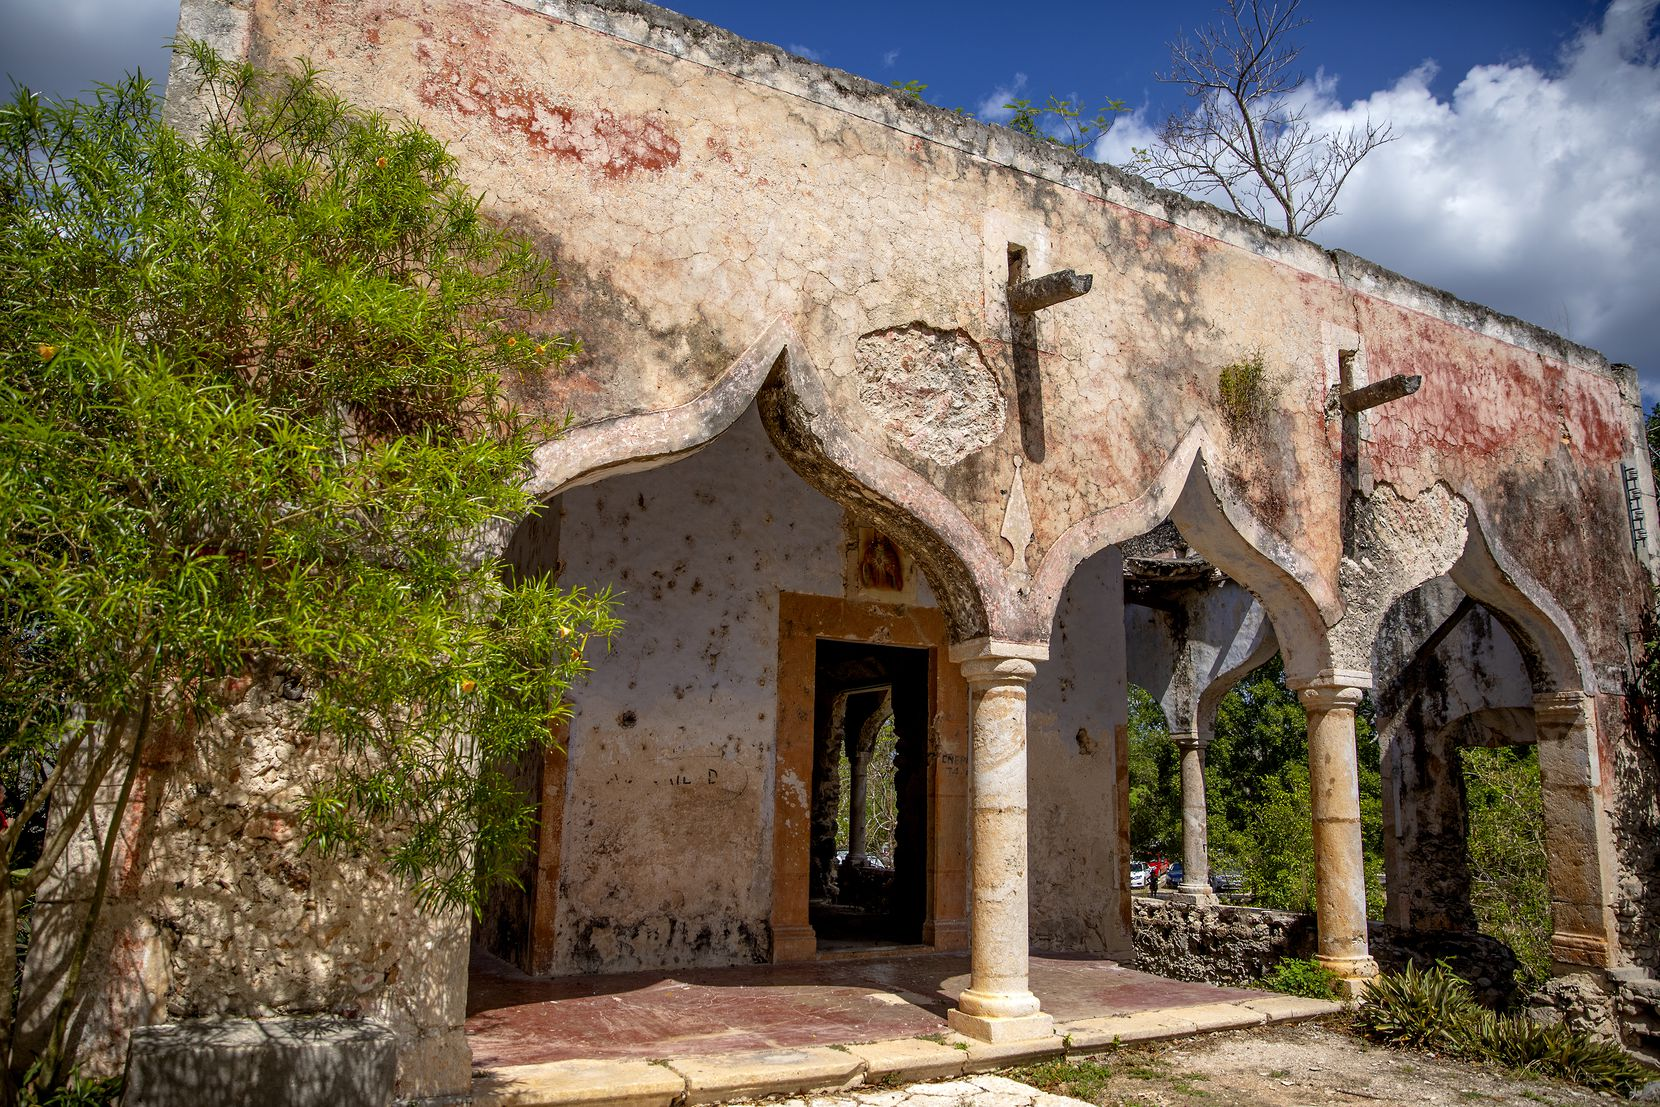 The Cenote Hacienda Mucuyche includes a tour through what remains of a historic hacienda.